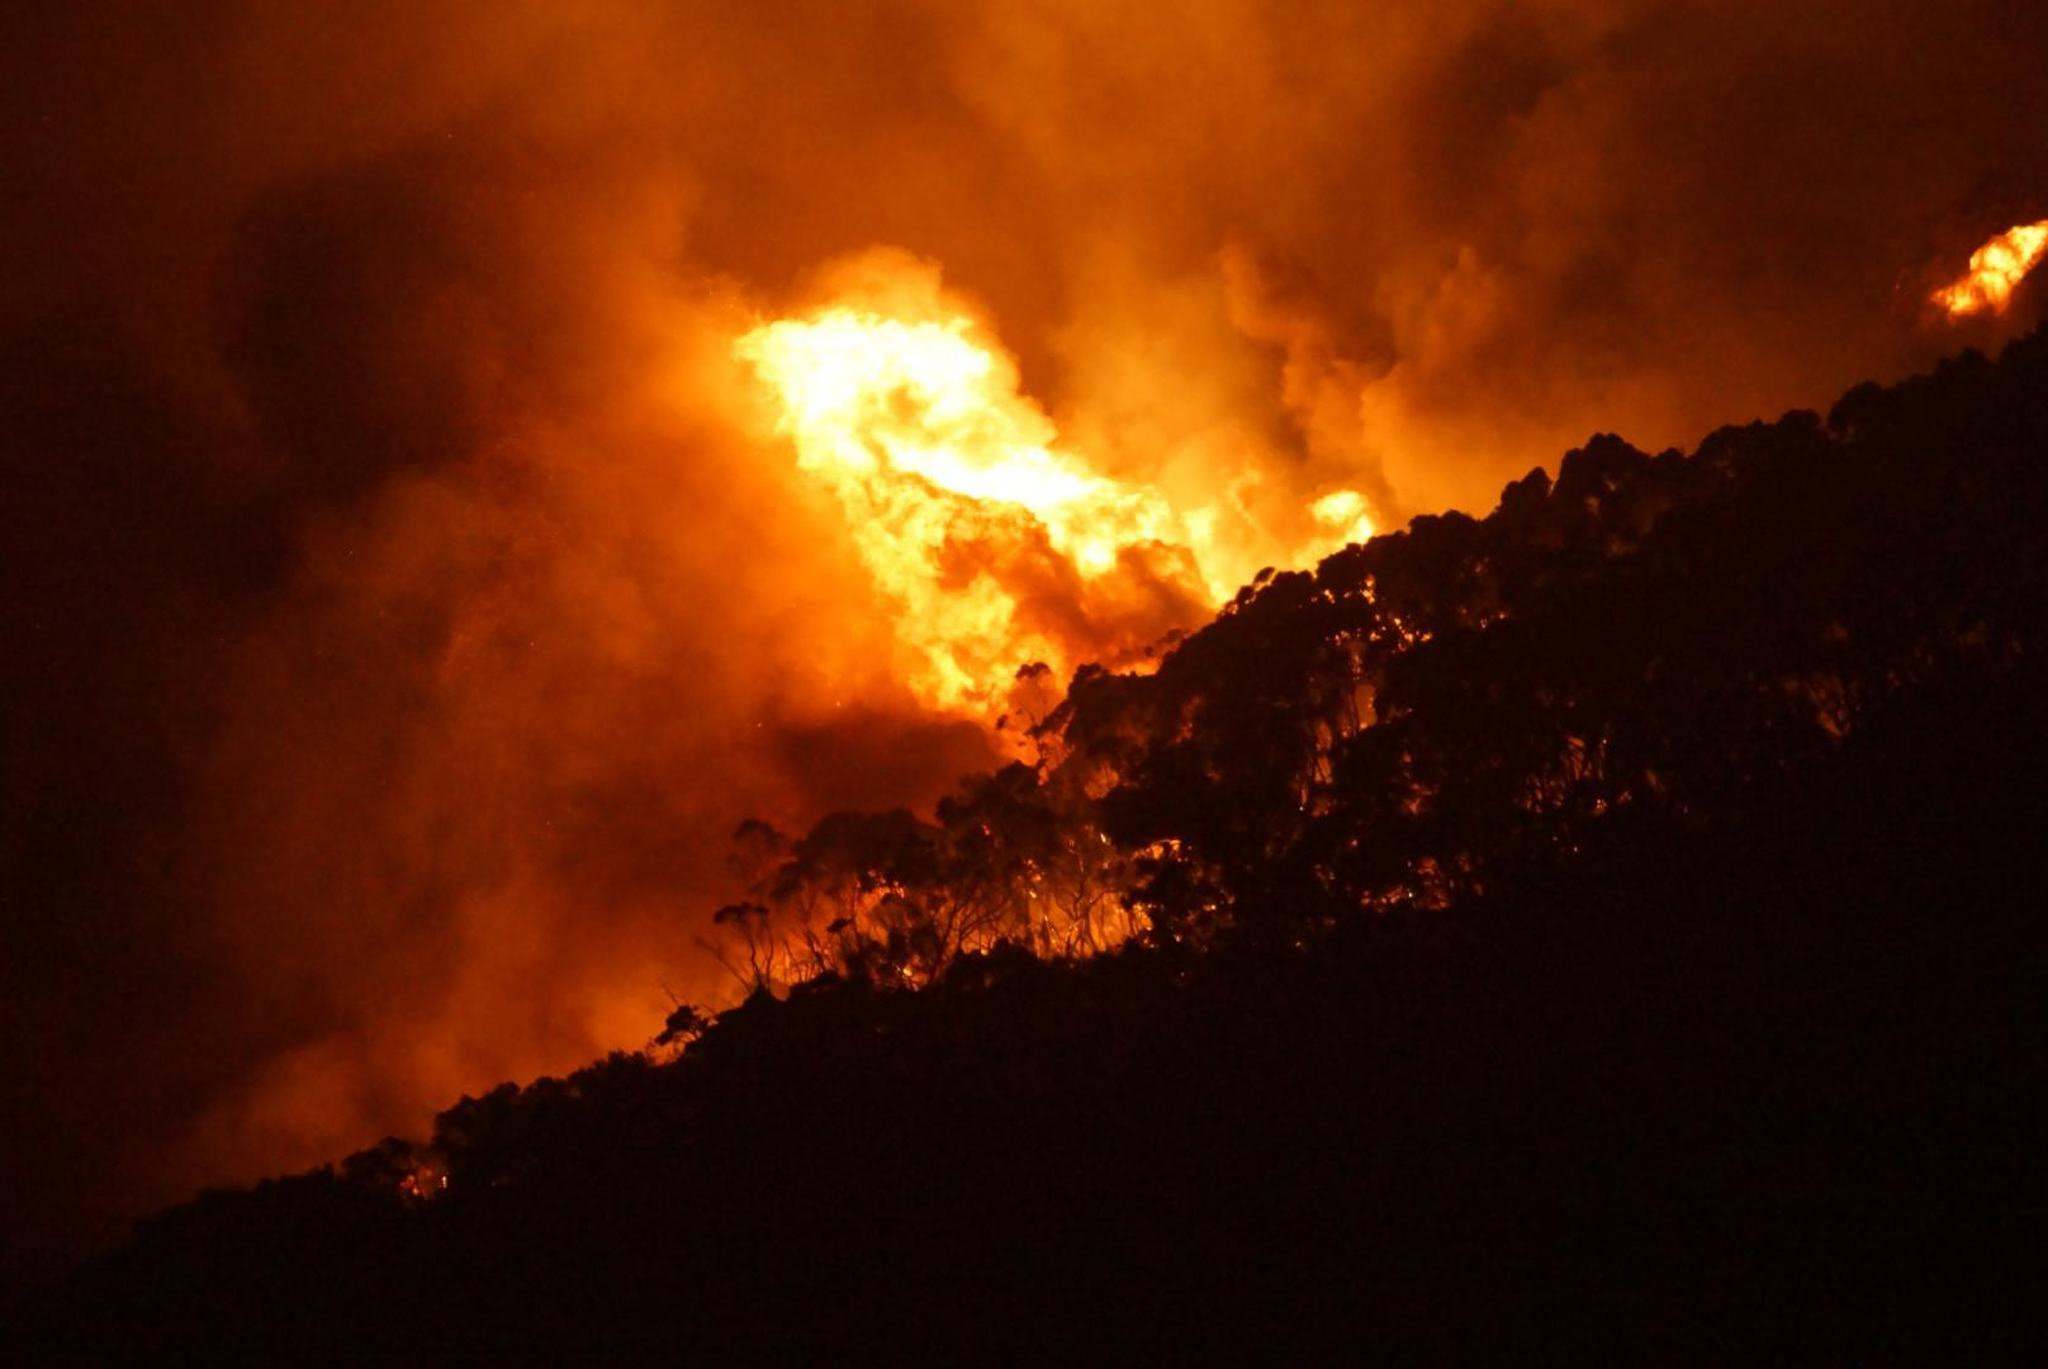 BUSHFIRE. A handout picture made available on 26 December 2015 shows a bushfire at Wye River near Lorne, south of Melbourne, Australia, 25 December 2015. Keith Pakenham / EPA